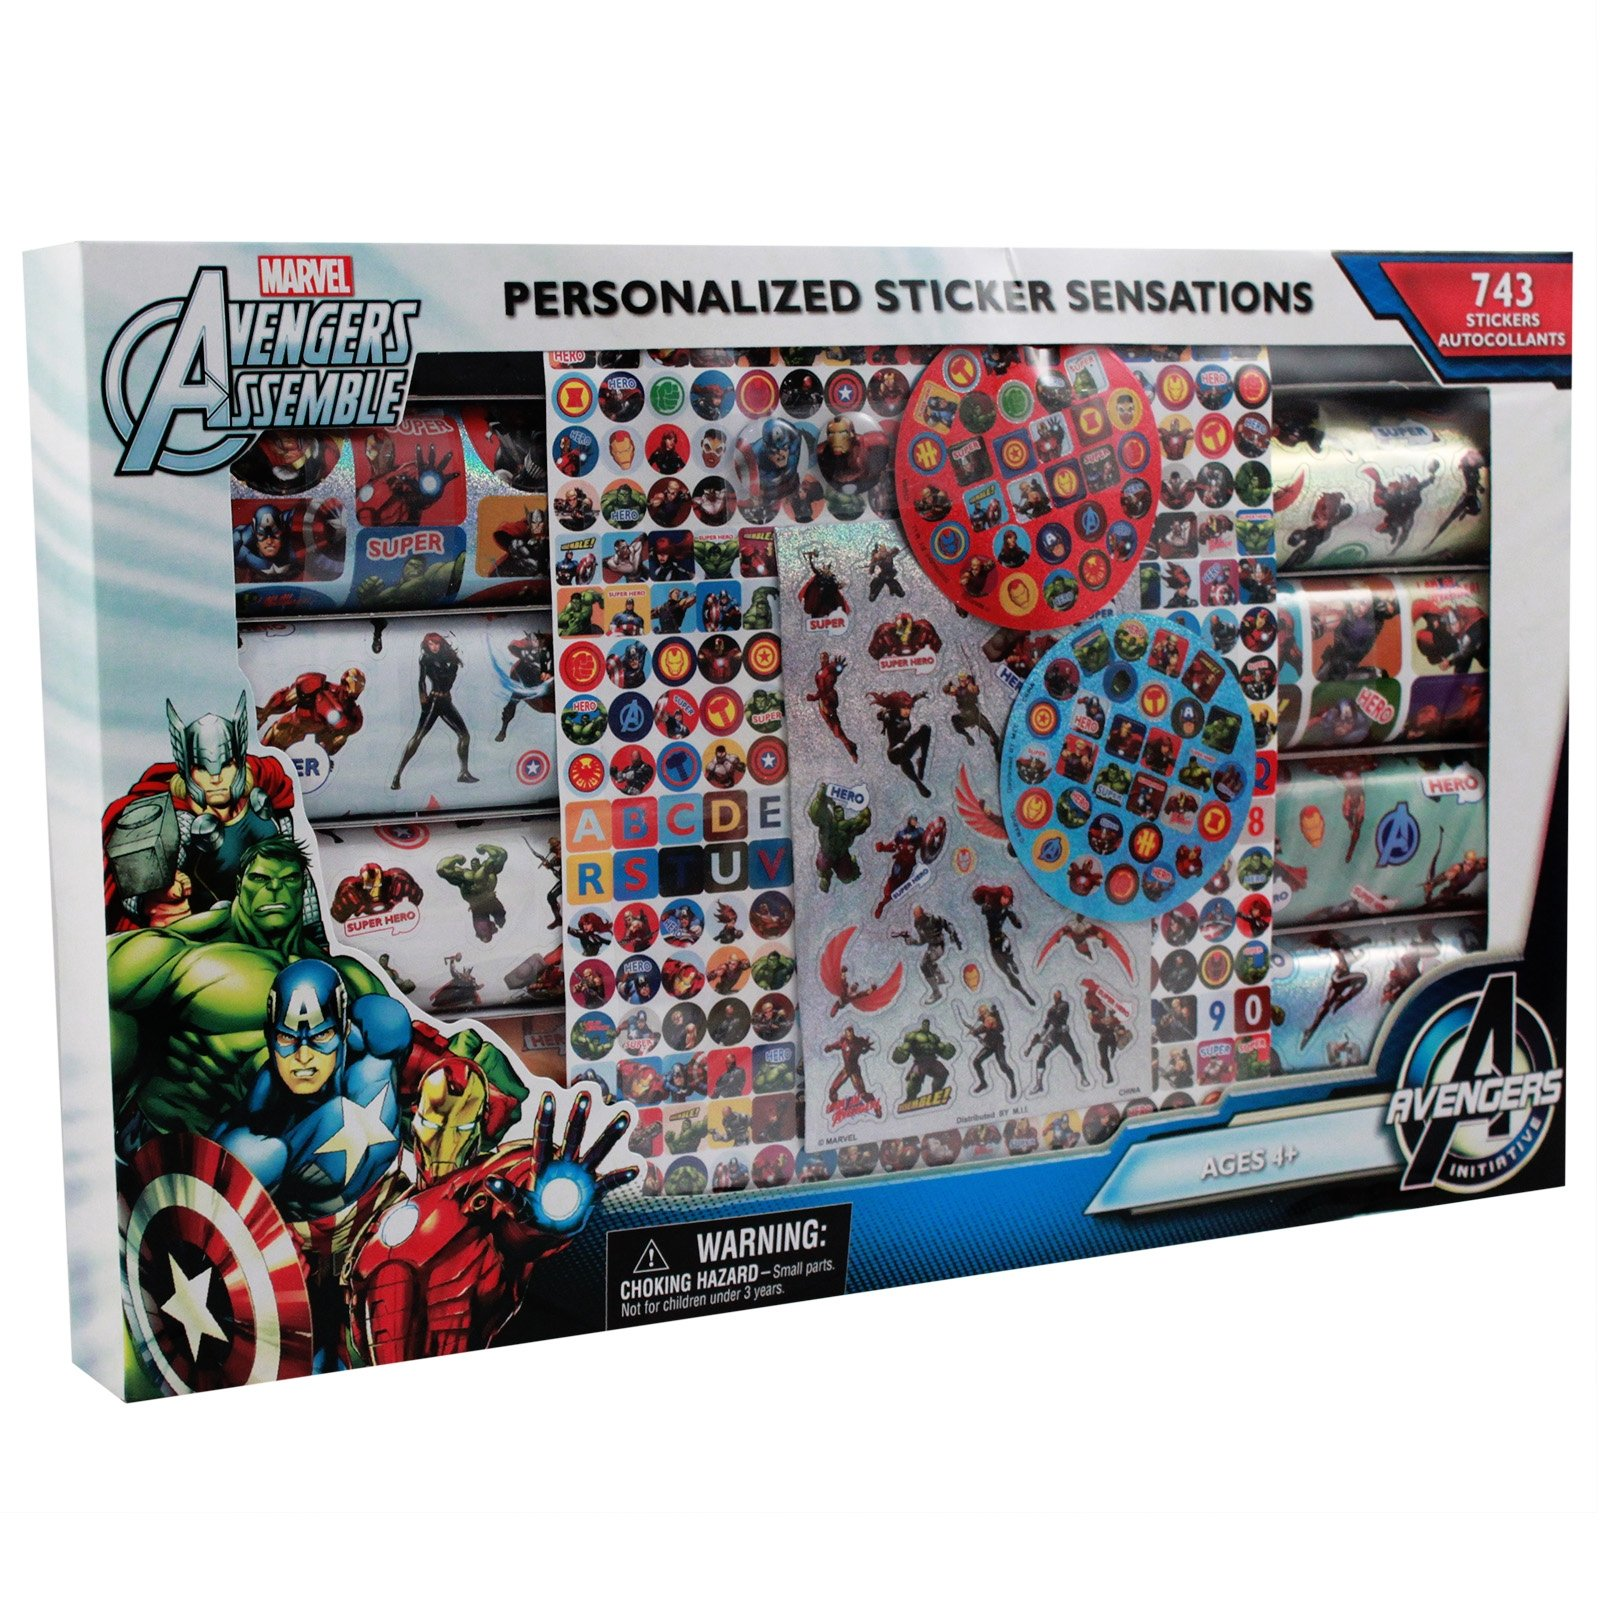 743pc Marvel Avengers Themed Sticker Mania Kids Art Supplies Crafting Set